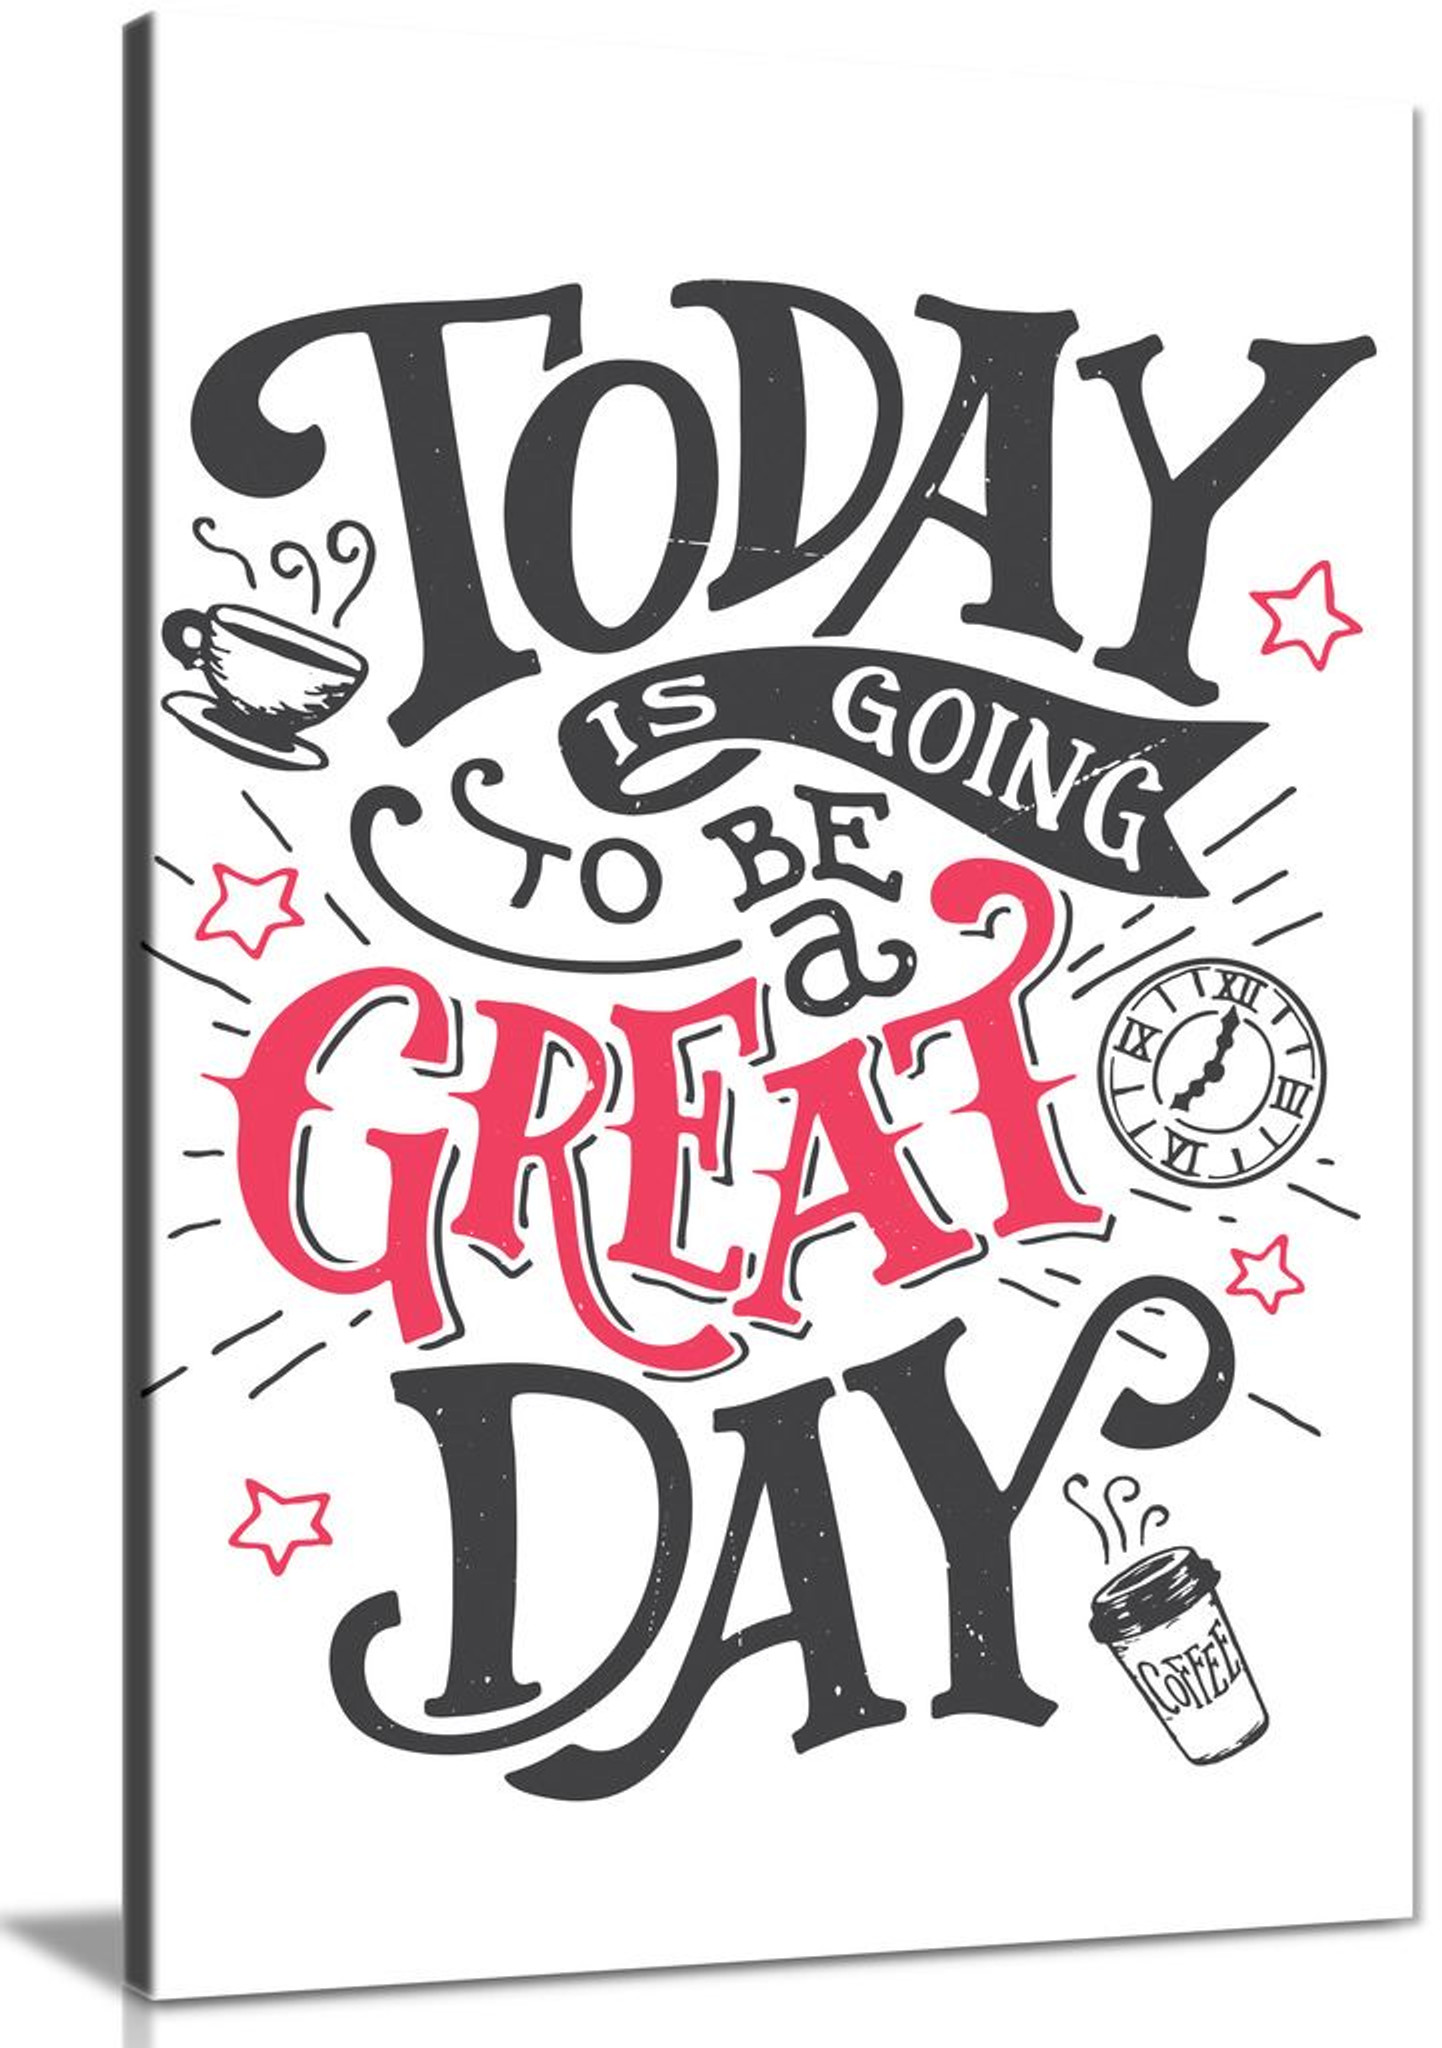 Today Is Going To Be A Great Day Inspirational Quote Motivational Canvas